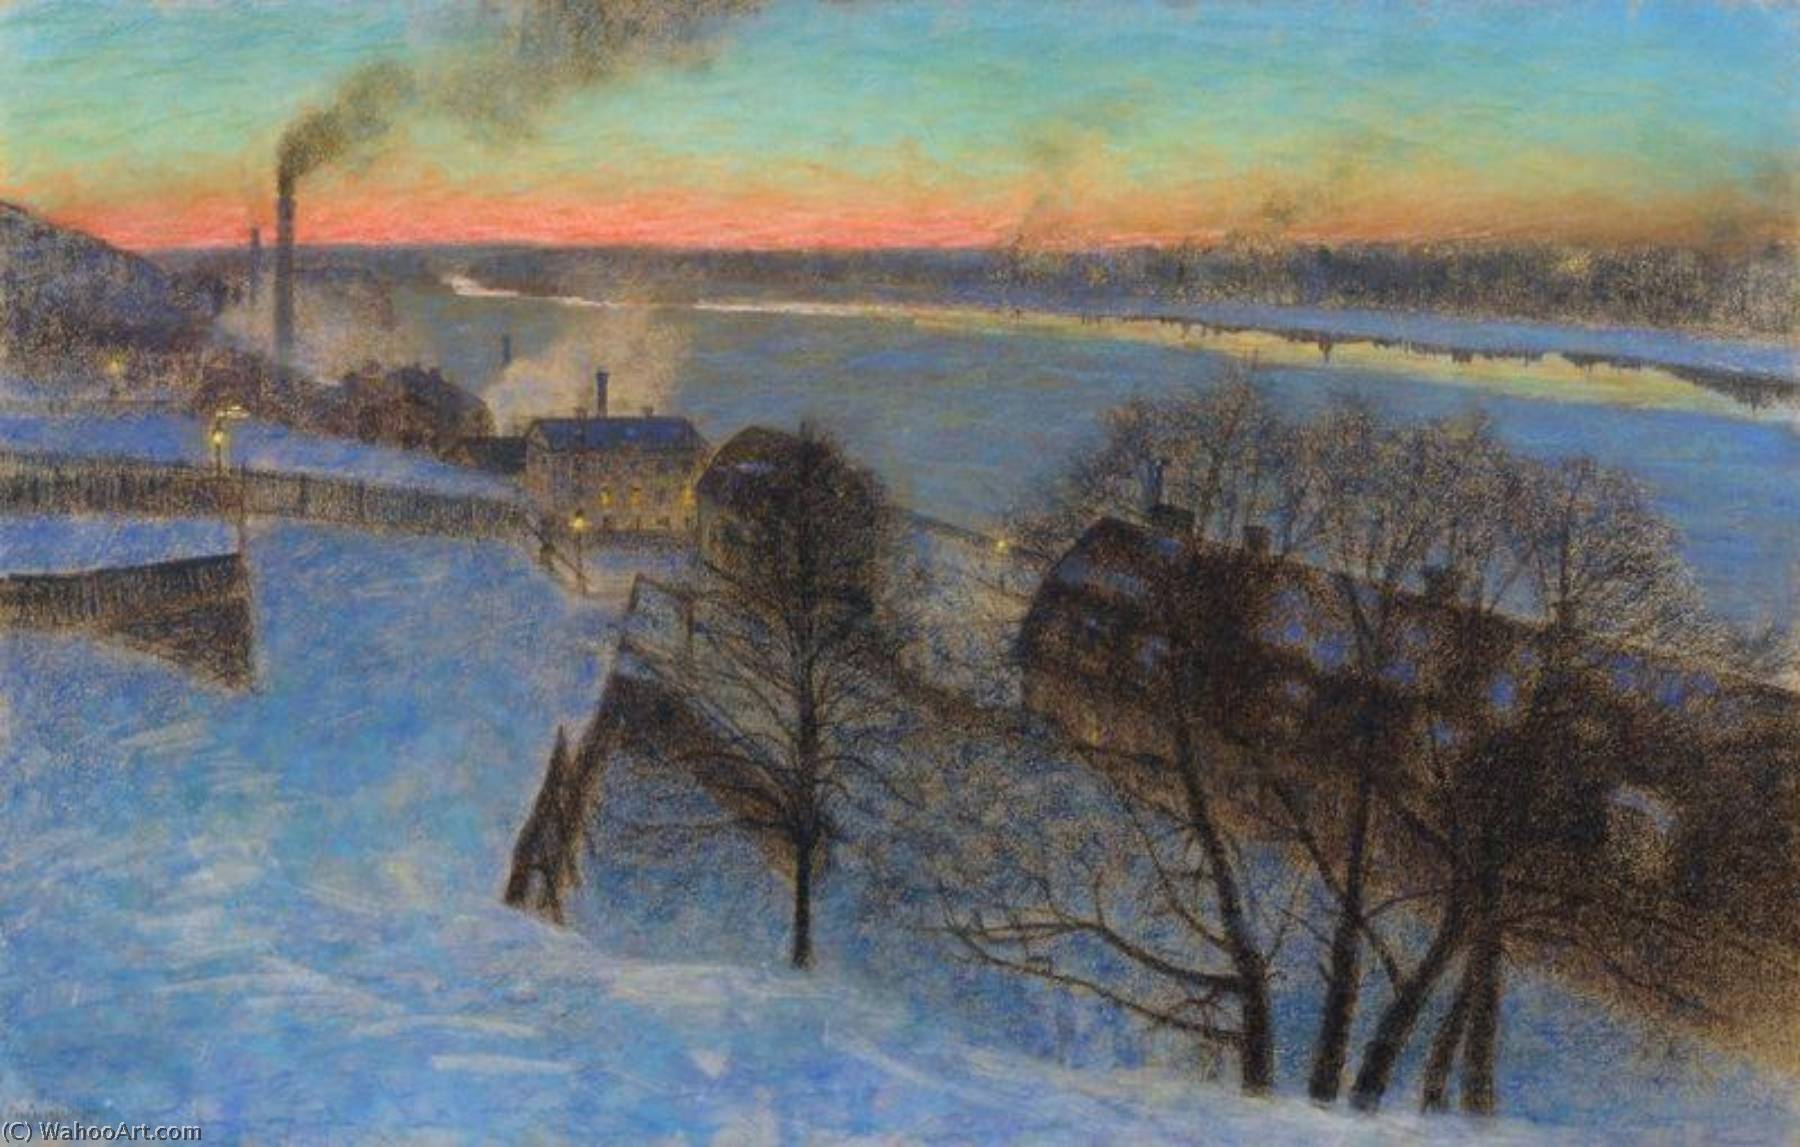 Evening in February, Riddarfjärden, Stockholm, 1893 by Eugene Jansson (1862-1915) | Oil Painting | WahooArt.com